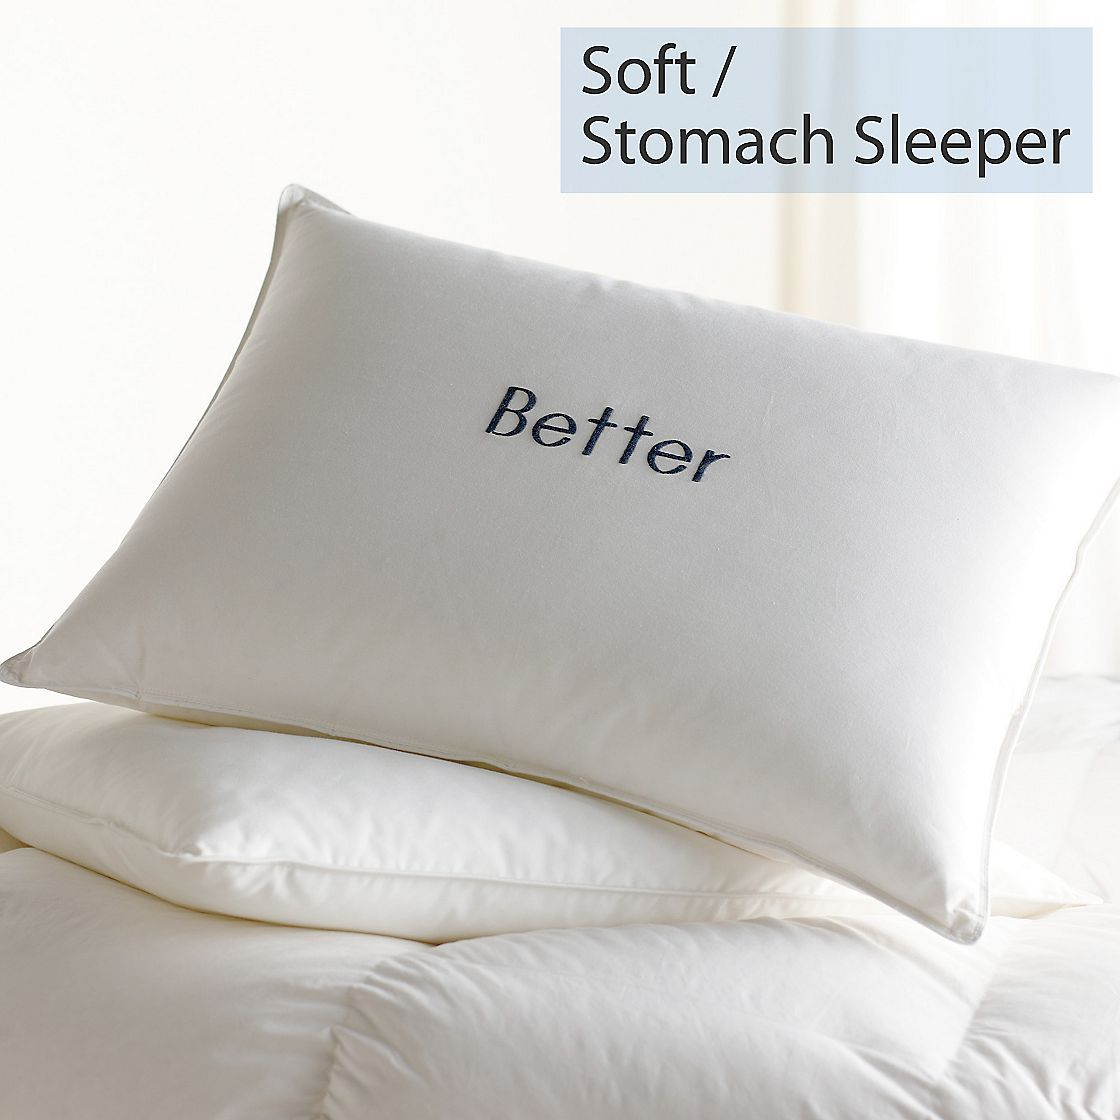 Down Feather Soft Stomach Sleeper Better Pillows Best Pillow Best Bed Pillows Feather Pillows